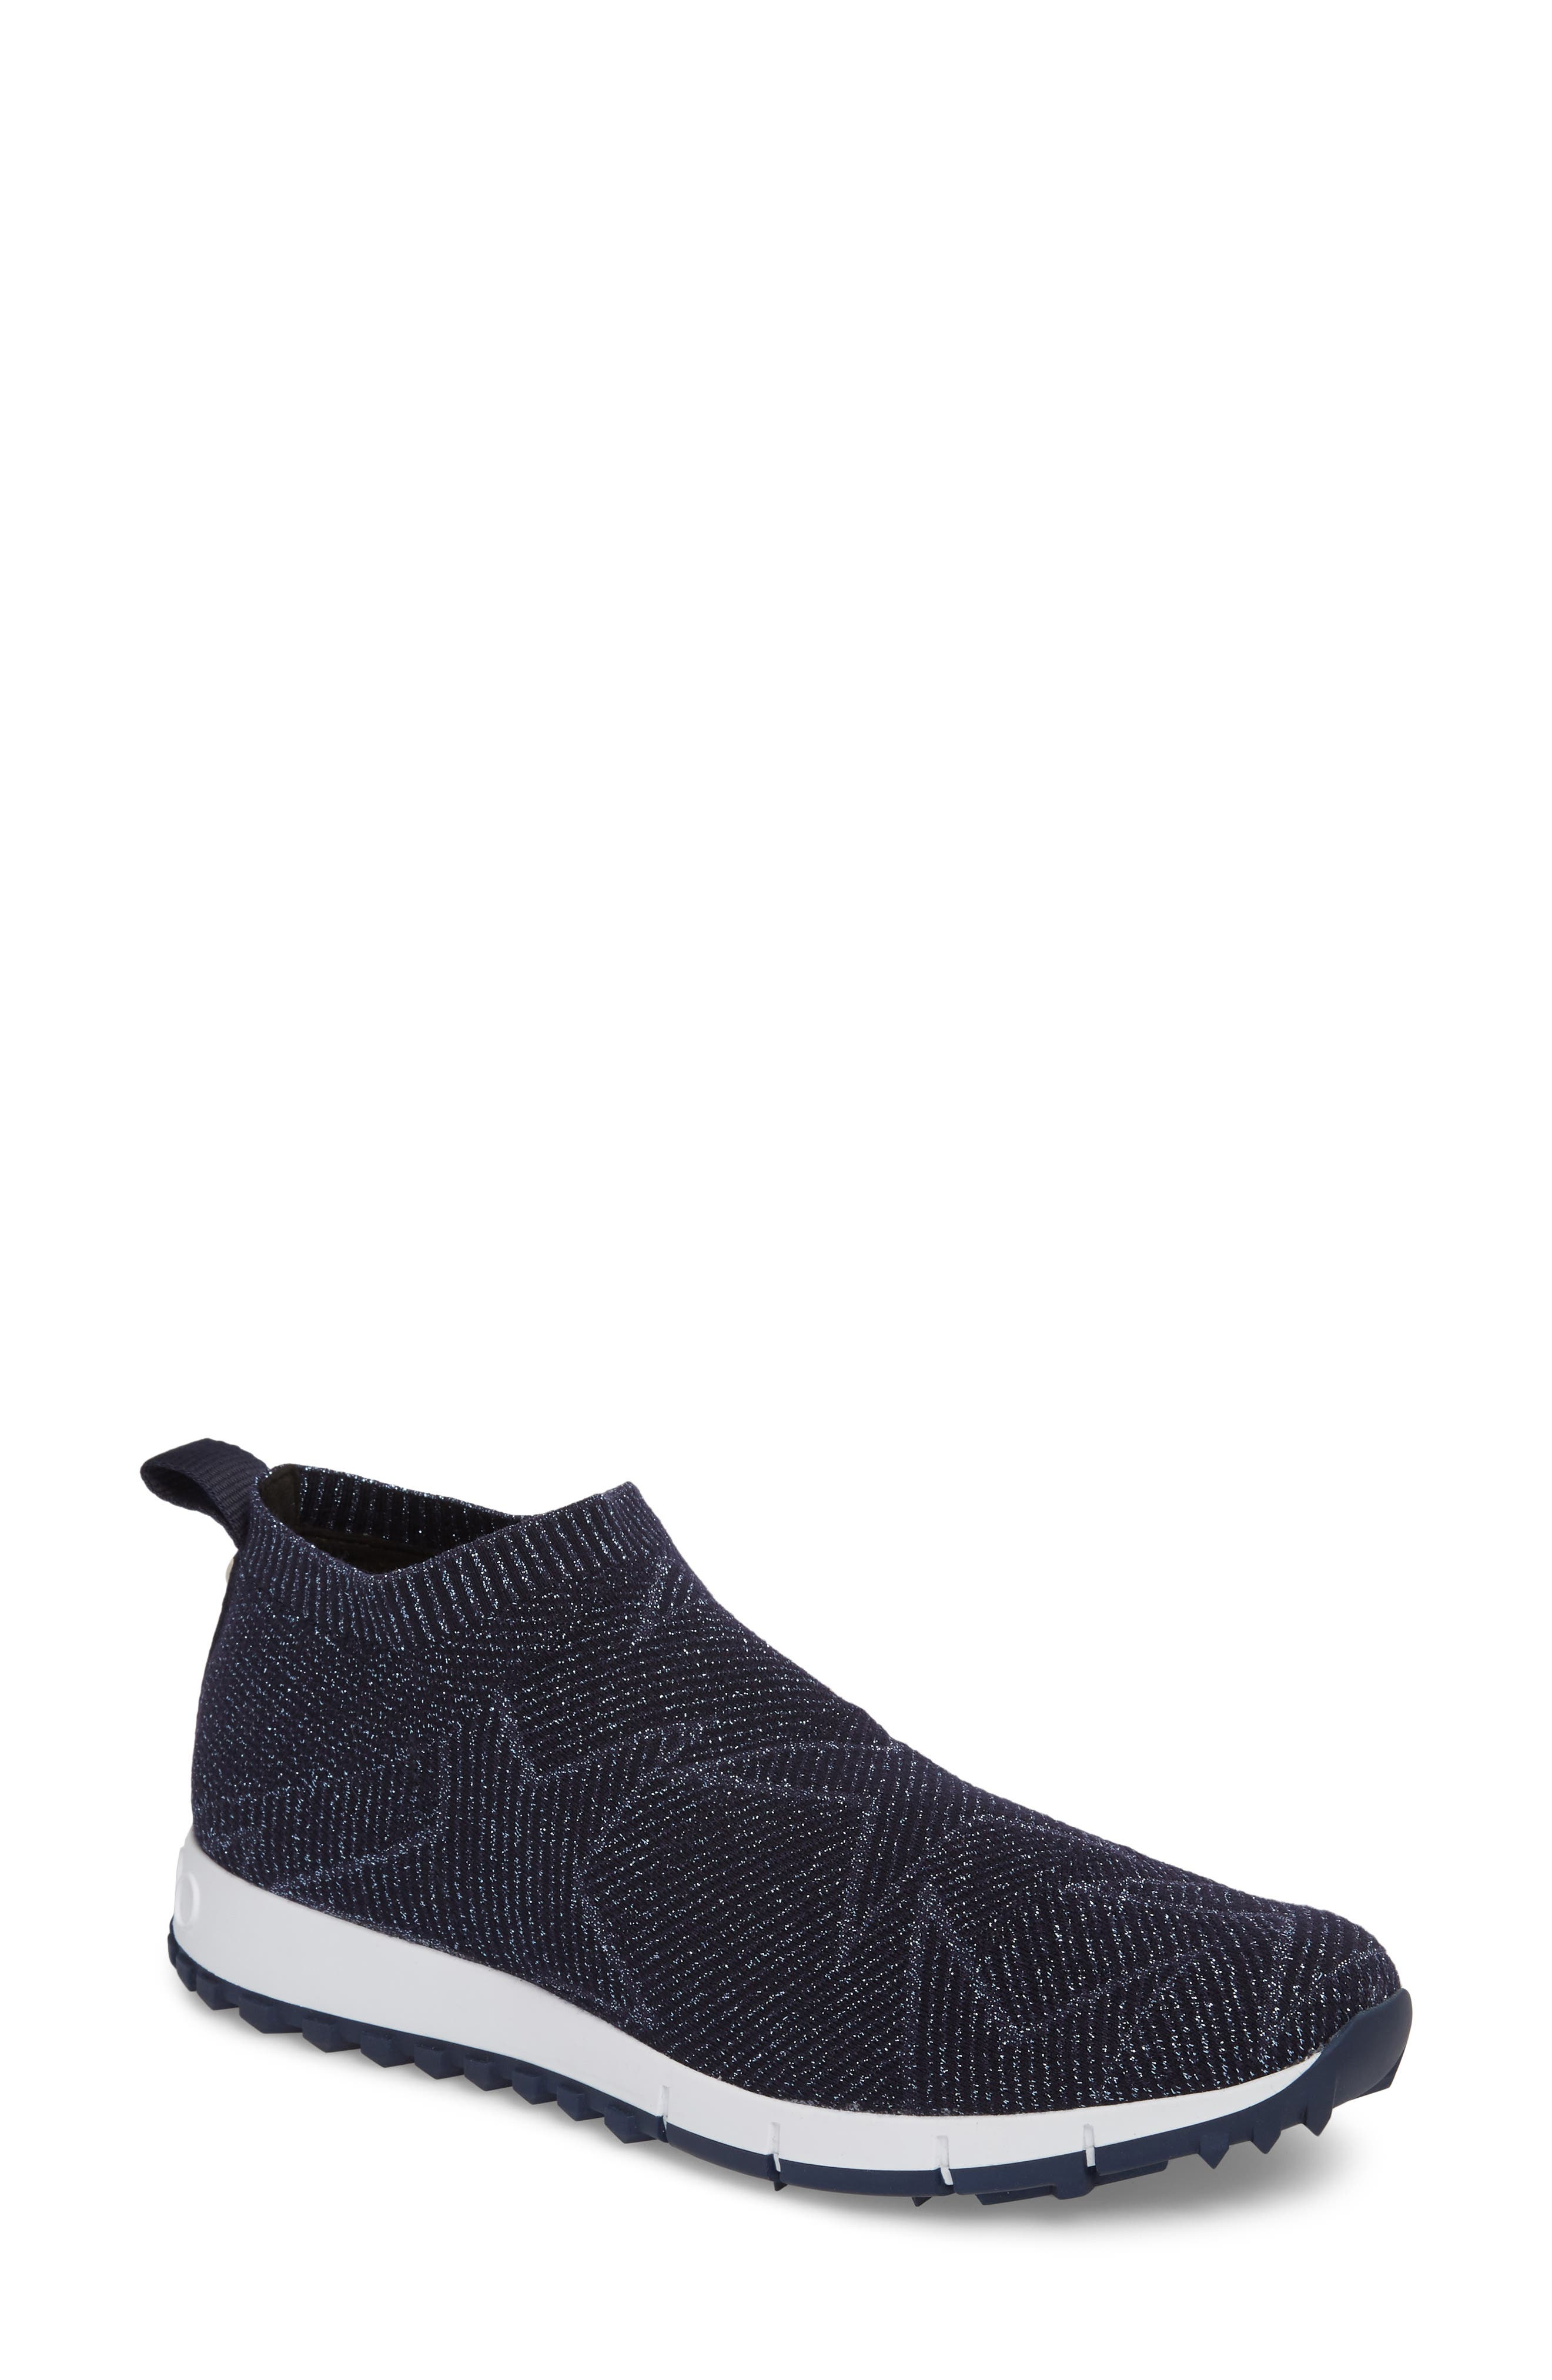 Norway Star Slip-On Sneaker,                             Main thumbnail 1, color,                             NAVY